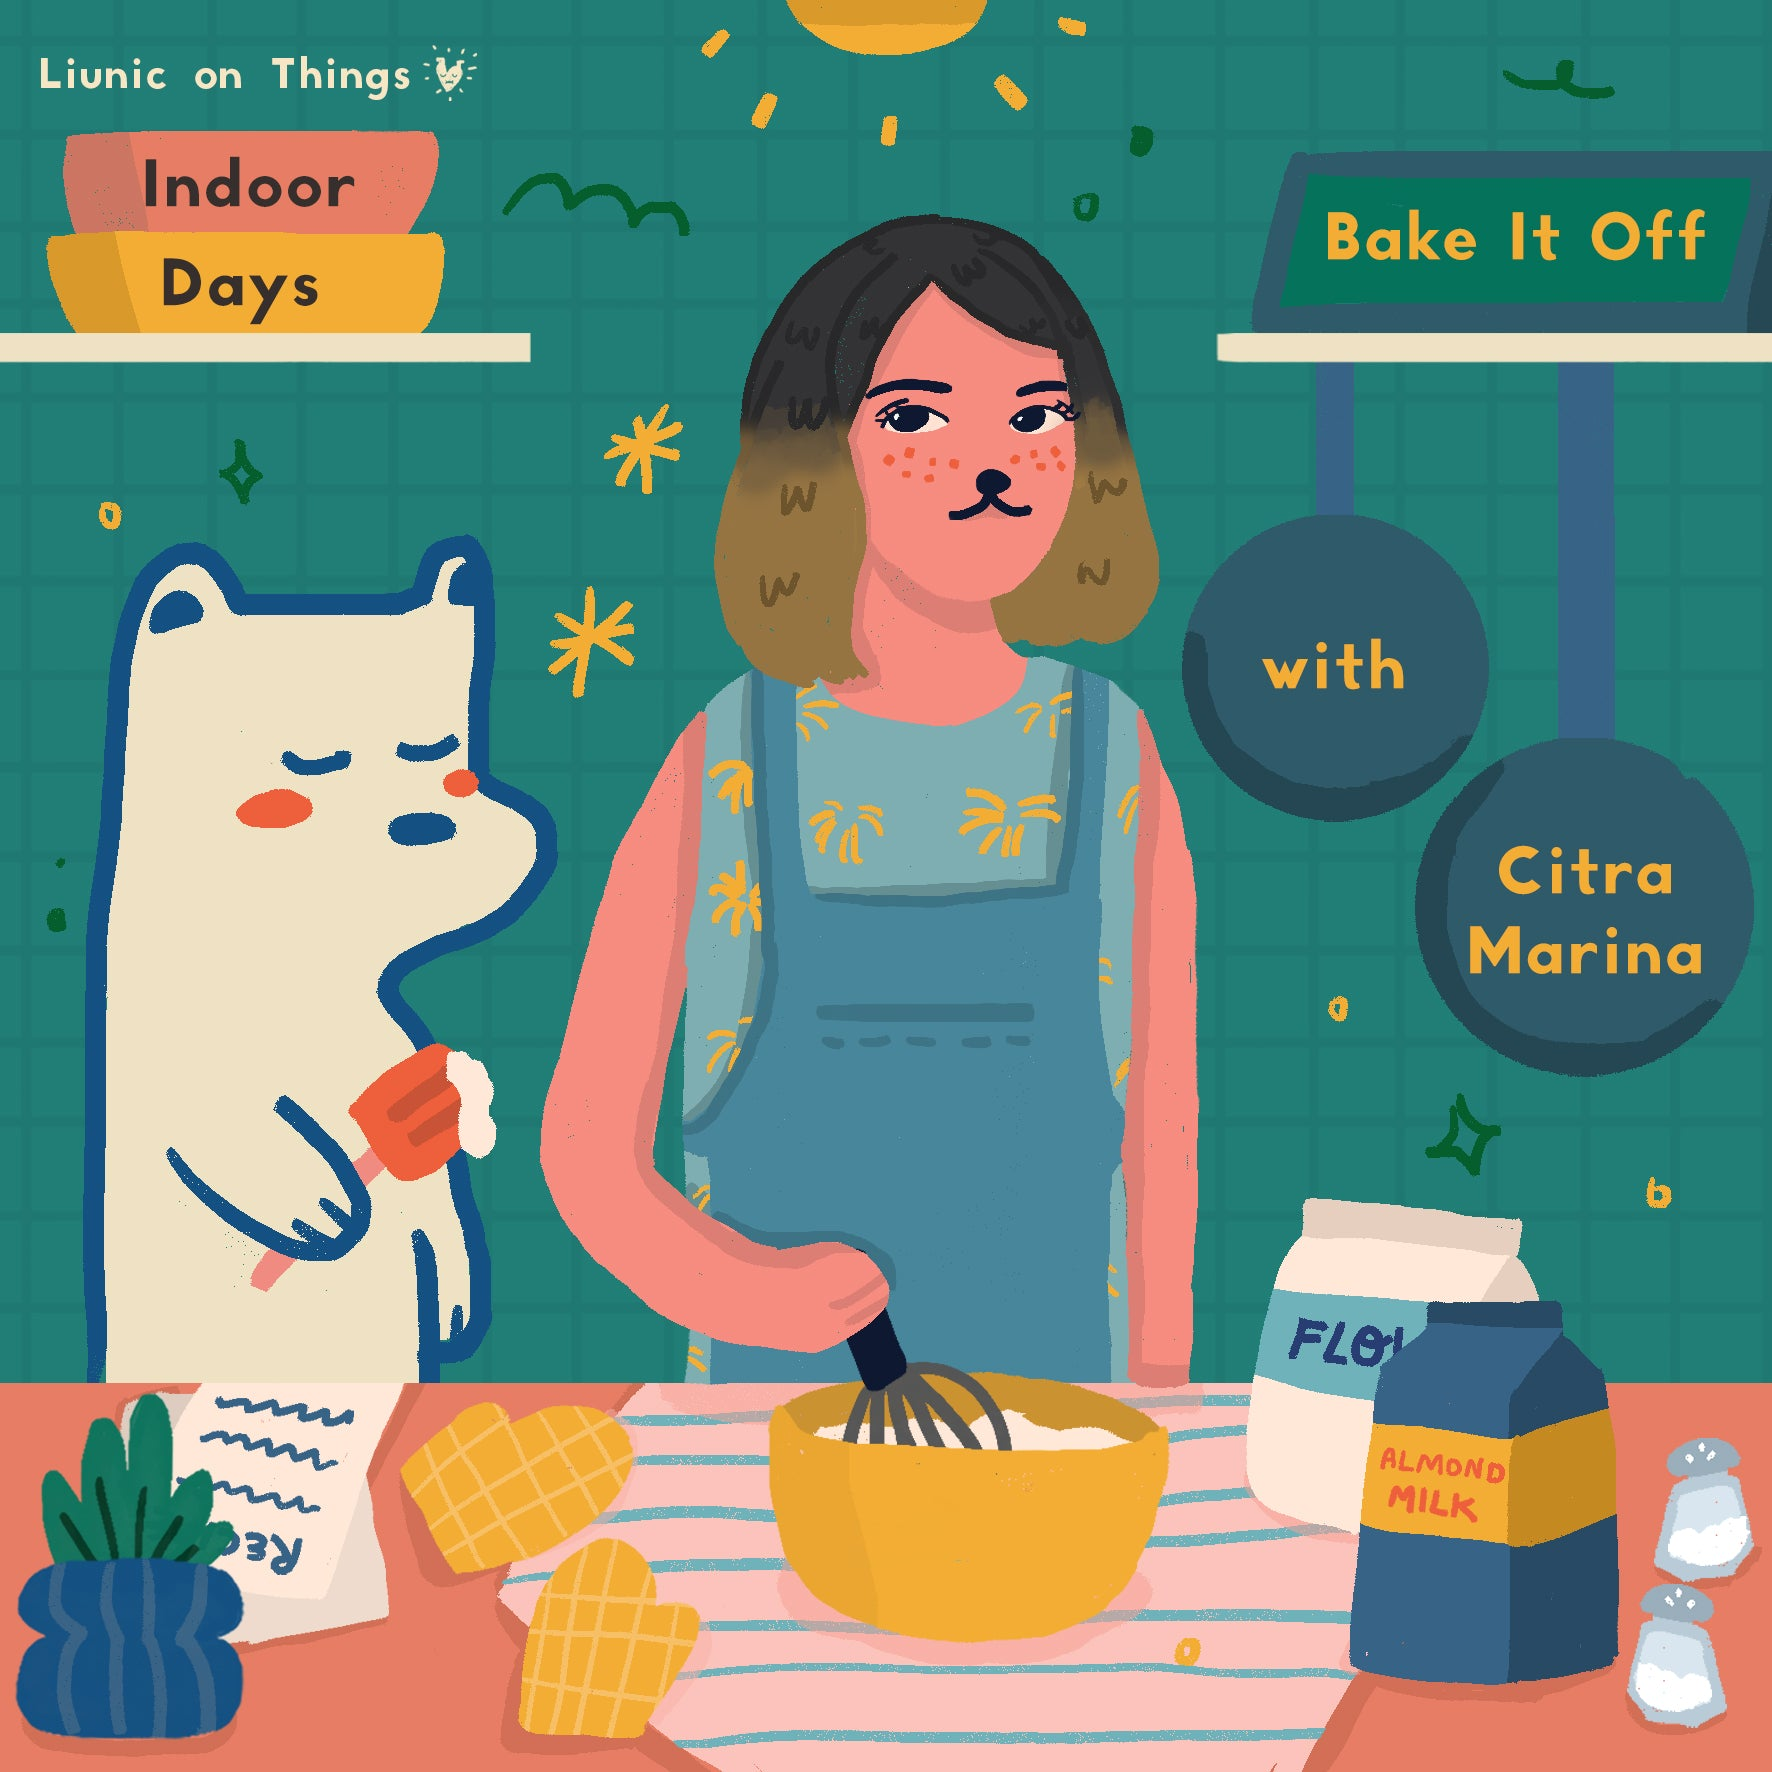 Indoor Days: Bake it Off with Citra Marina